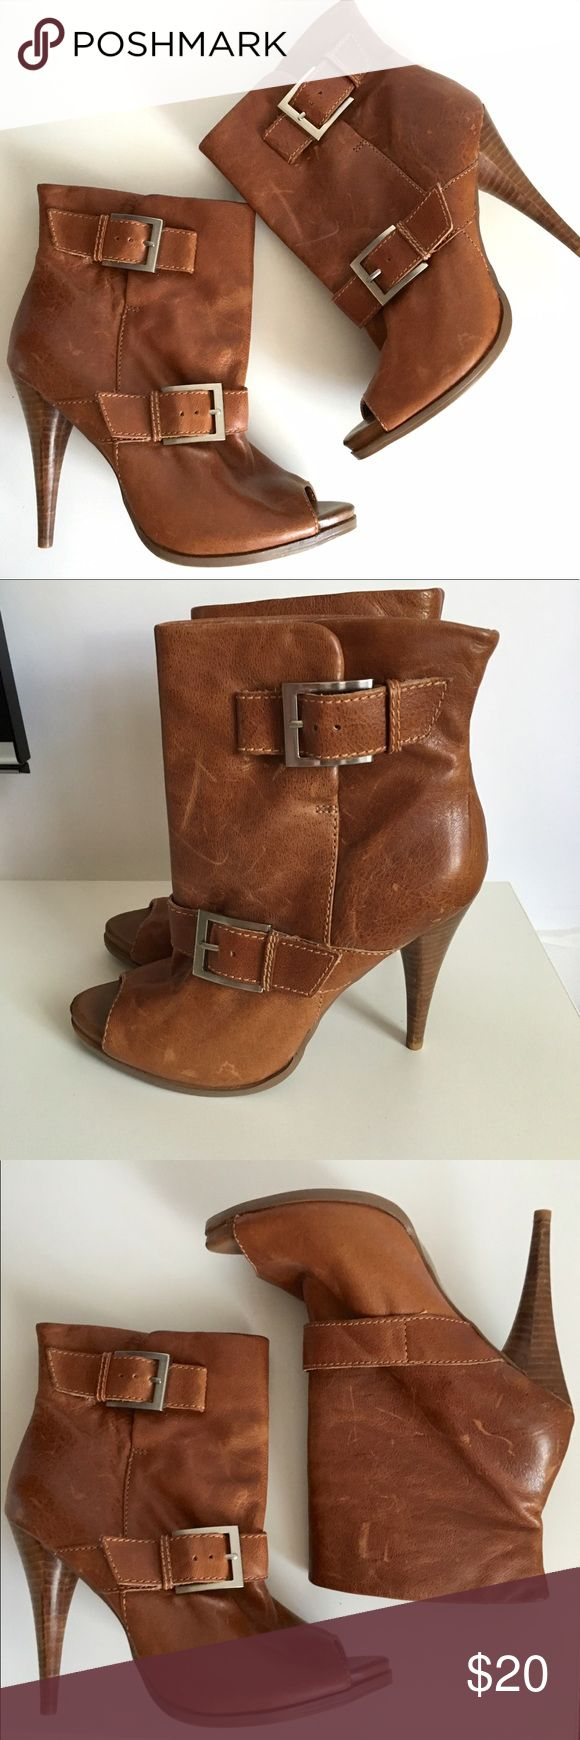 """Jessica Simpson Leather """"Dakee"""" Booties Jessica Simpson Leather """"Dakee"""" Bootie. Very good condition imperfection on inside of buckle strap (shown) otherwise great boots.  👍OFFERS welcome. 🚫no trades pls Jessica Simpson Shoes Ankle Boots & Booties"""